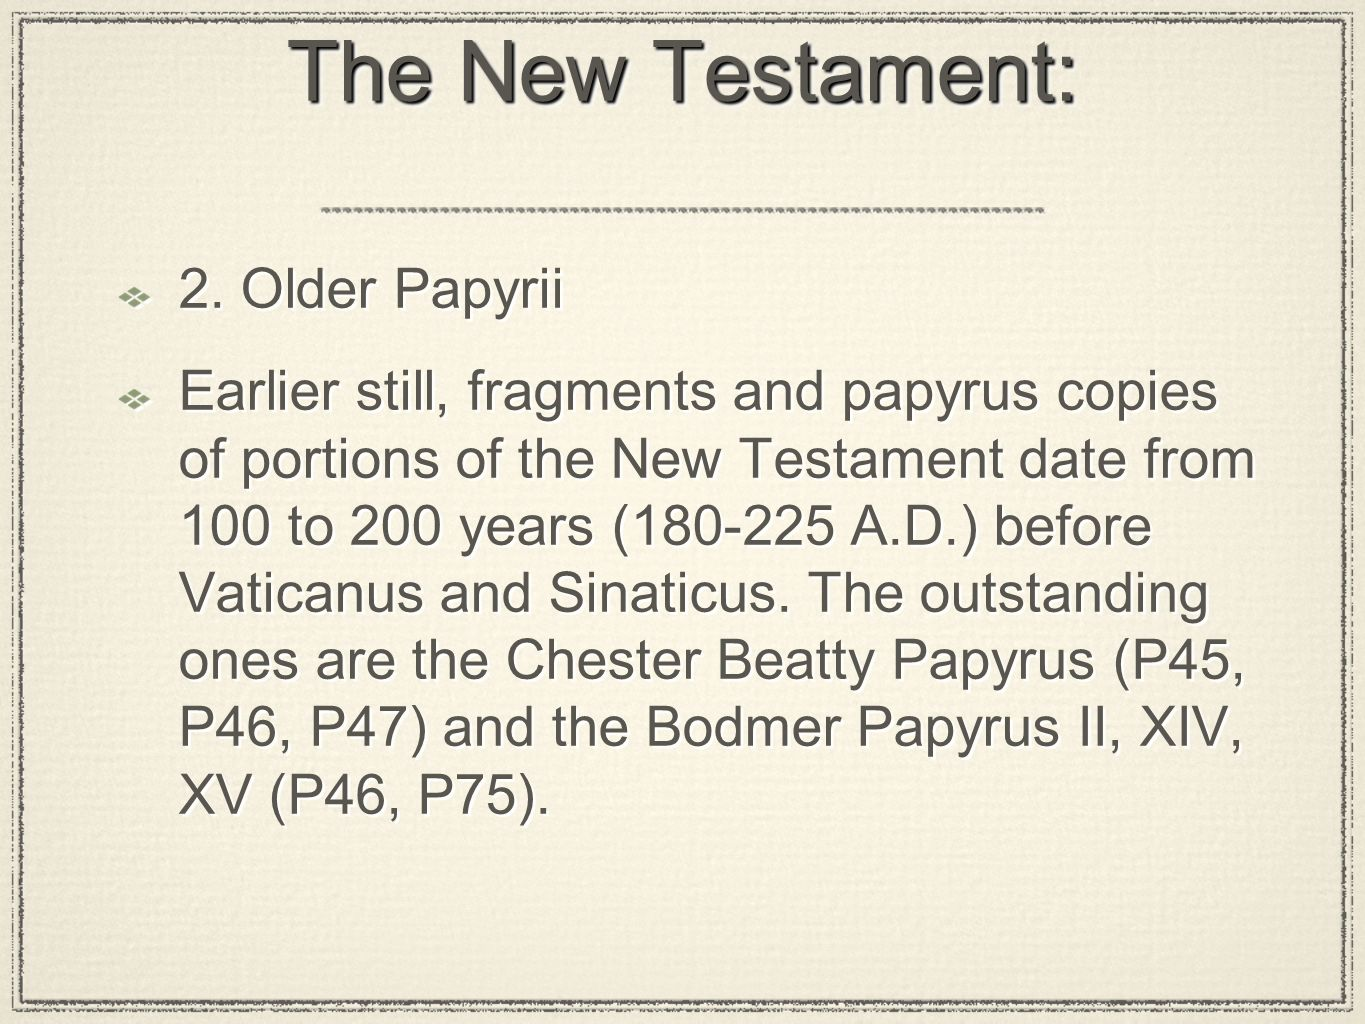 The New Testament: 2. Older Papyrii